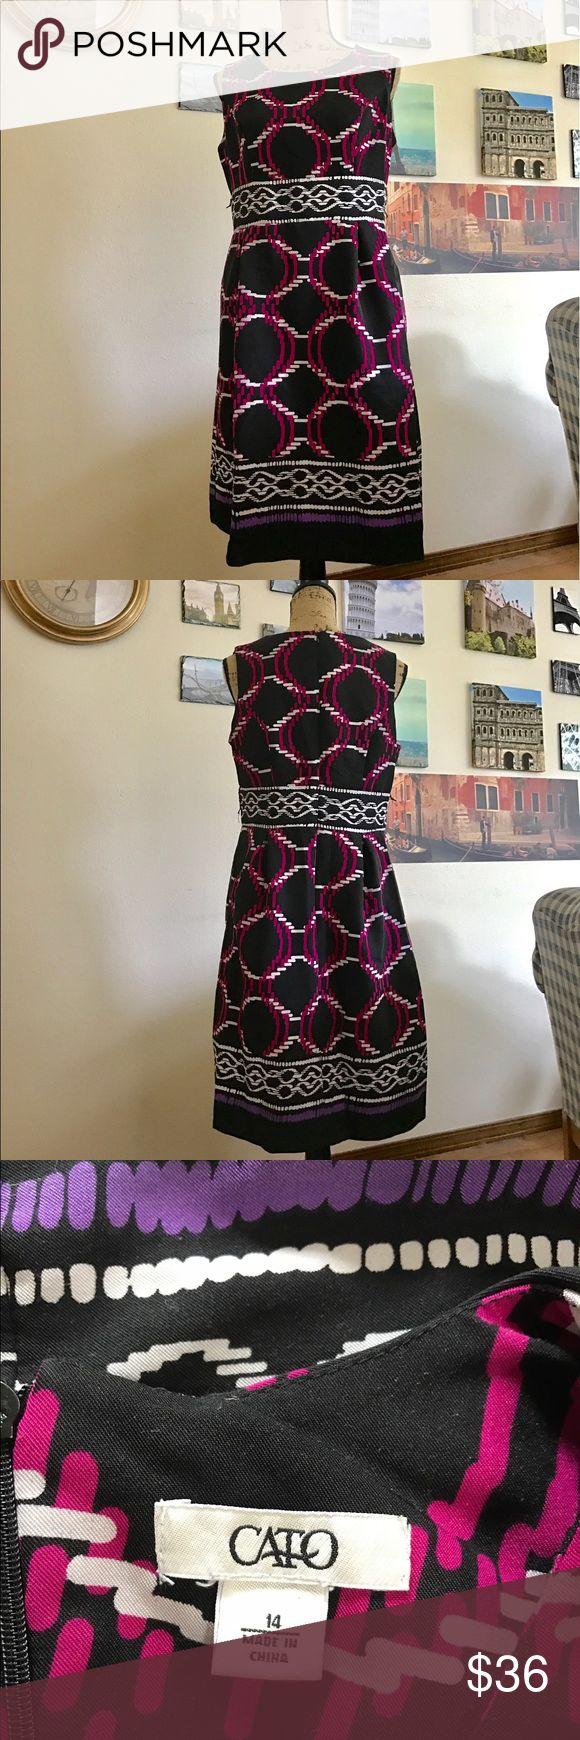 """Cato plus size business professional dress, Sz. 14 This dress is so beautiful with its vibrant geometric design!!  Features a zipper up the back and pockets!  Minor pilling throughout (see 3rd photo).  Measures 19"""" pit to pit flat laid, waist measures 17"""" across the front flat laid and is 38"""" in length.  05111117017 Cato Dresses Midi"""